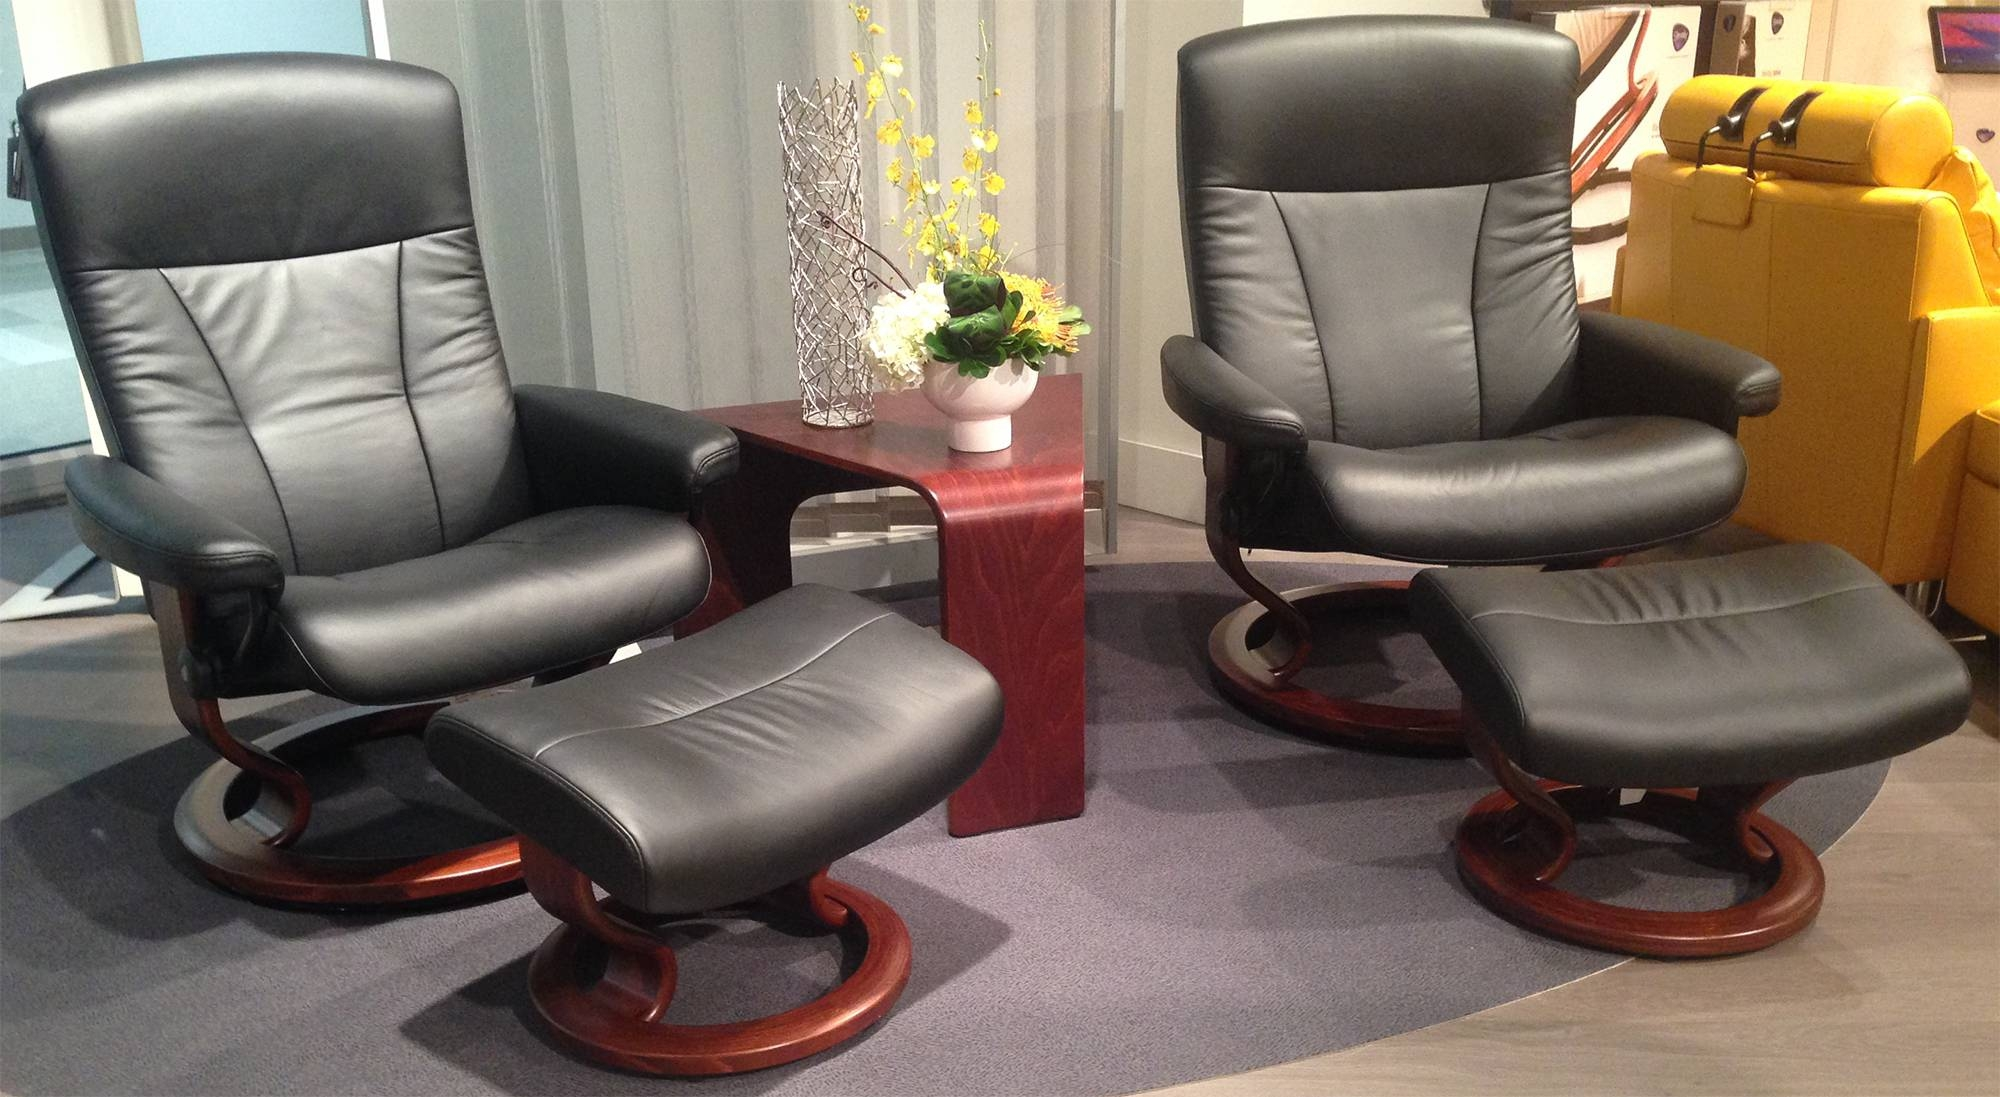 Ekornes Stressless President Large And Medium Recliner Chair intended for Ergonomic Sofas And Chairs (Image 9 of 30)